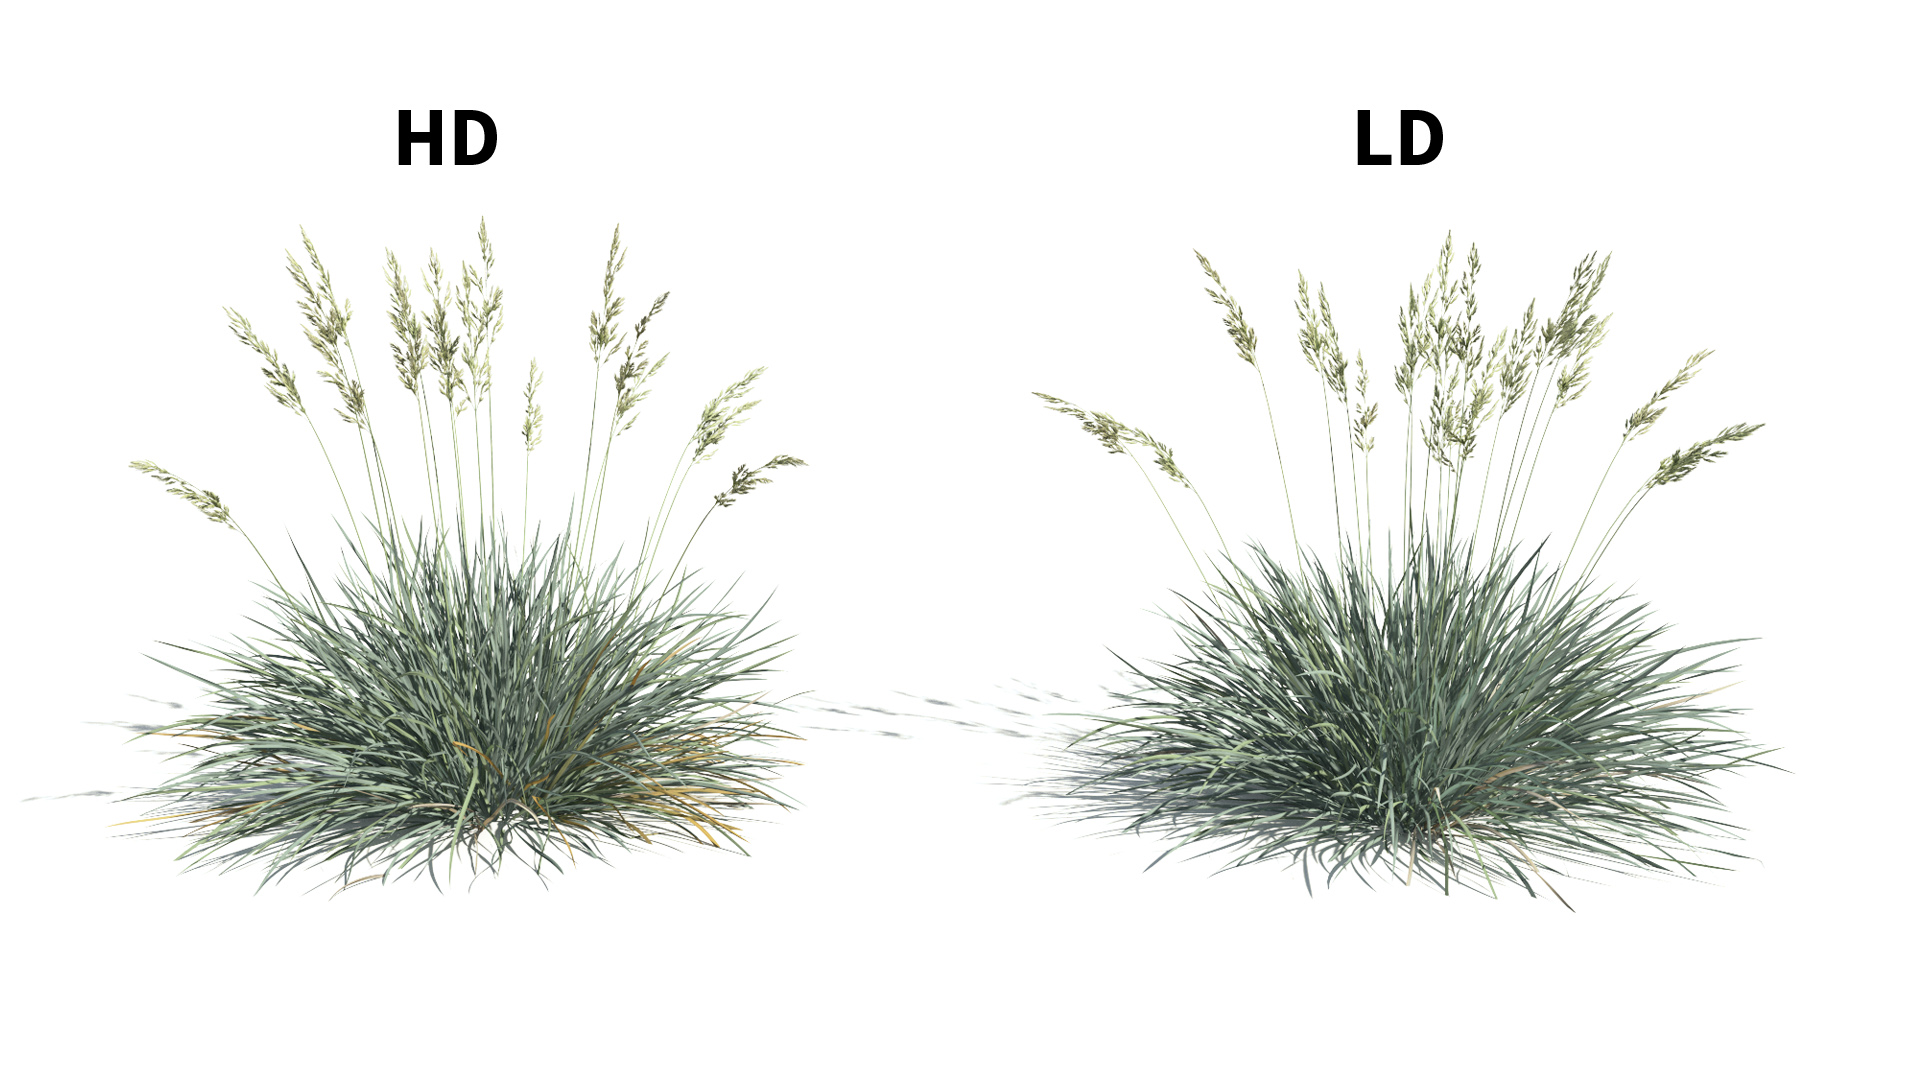 3D model of the Blue fescue Festuca glauca included versions